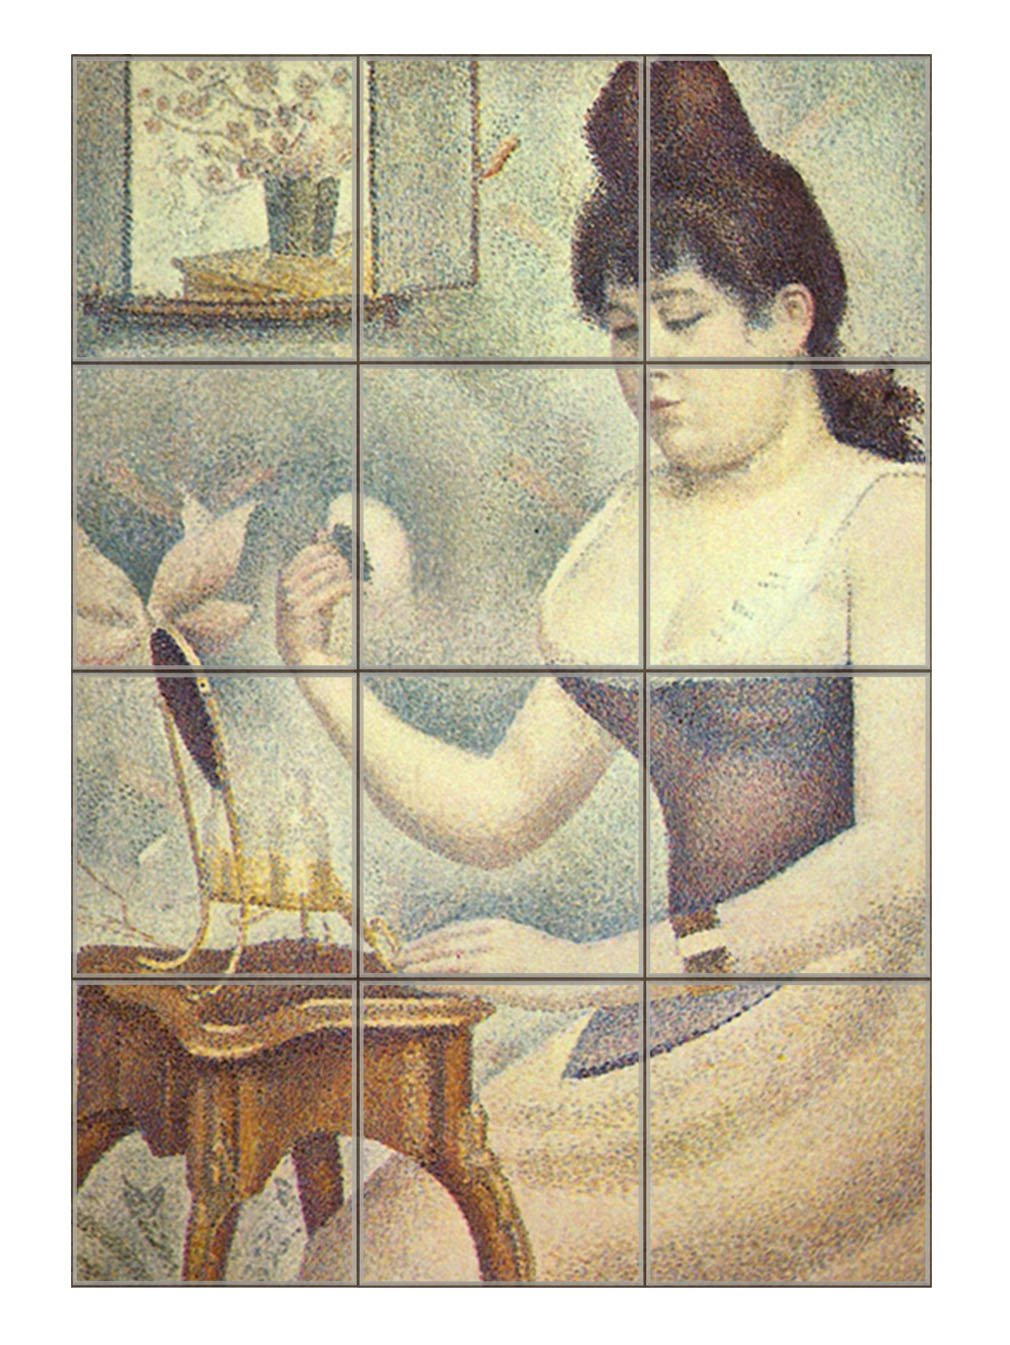 The Woman With The Powder Puff (Seurat) Vertical Tile Mural Satin Finish 24''Hx18''W 6 Inch Tile by Style in Print